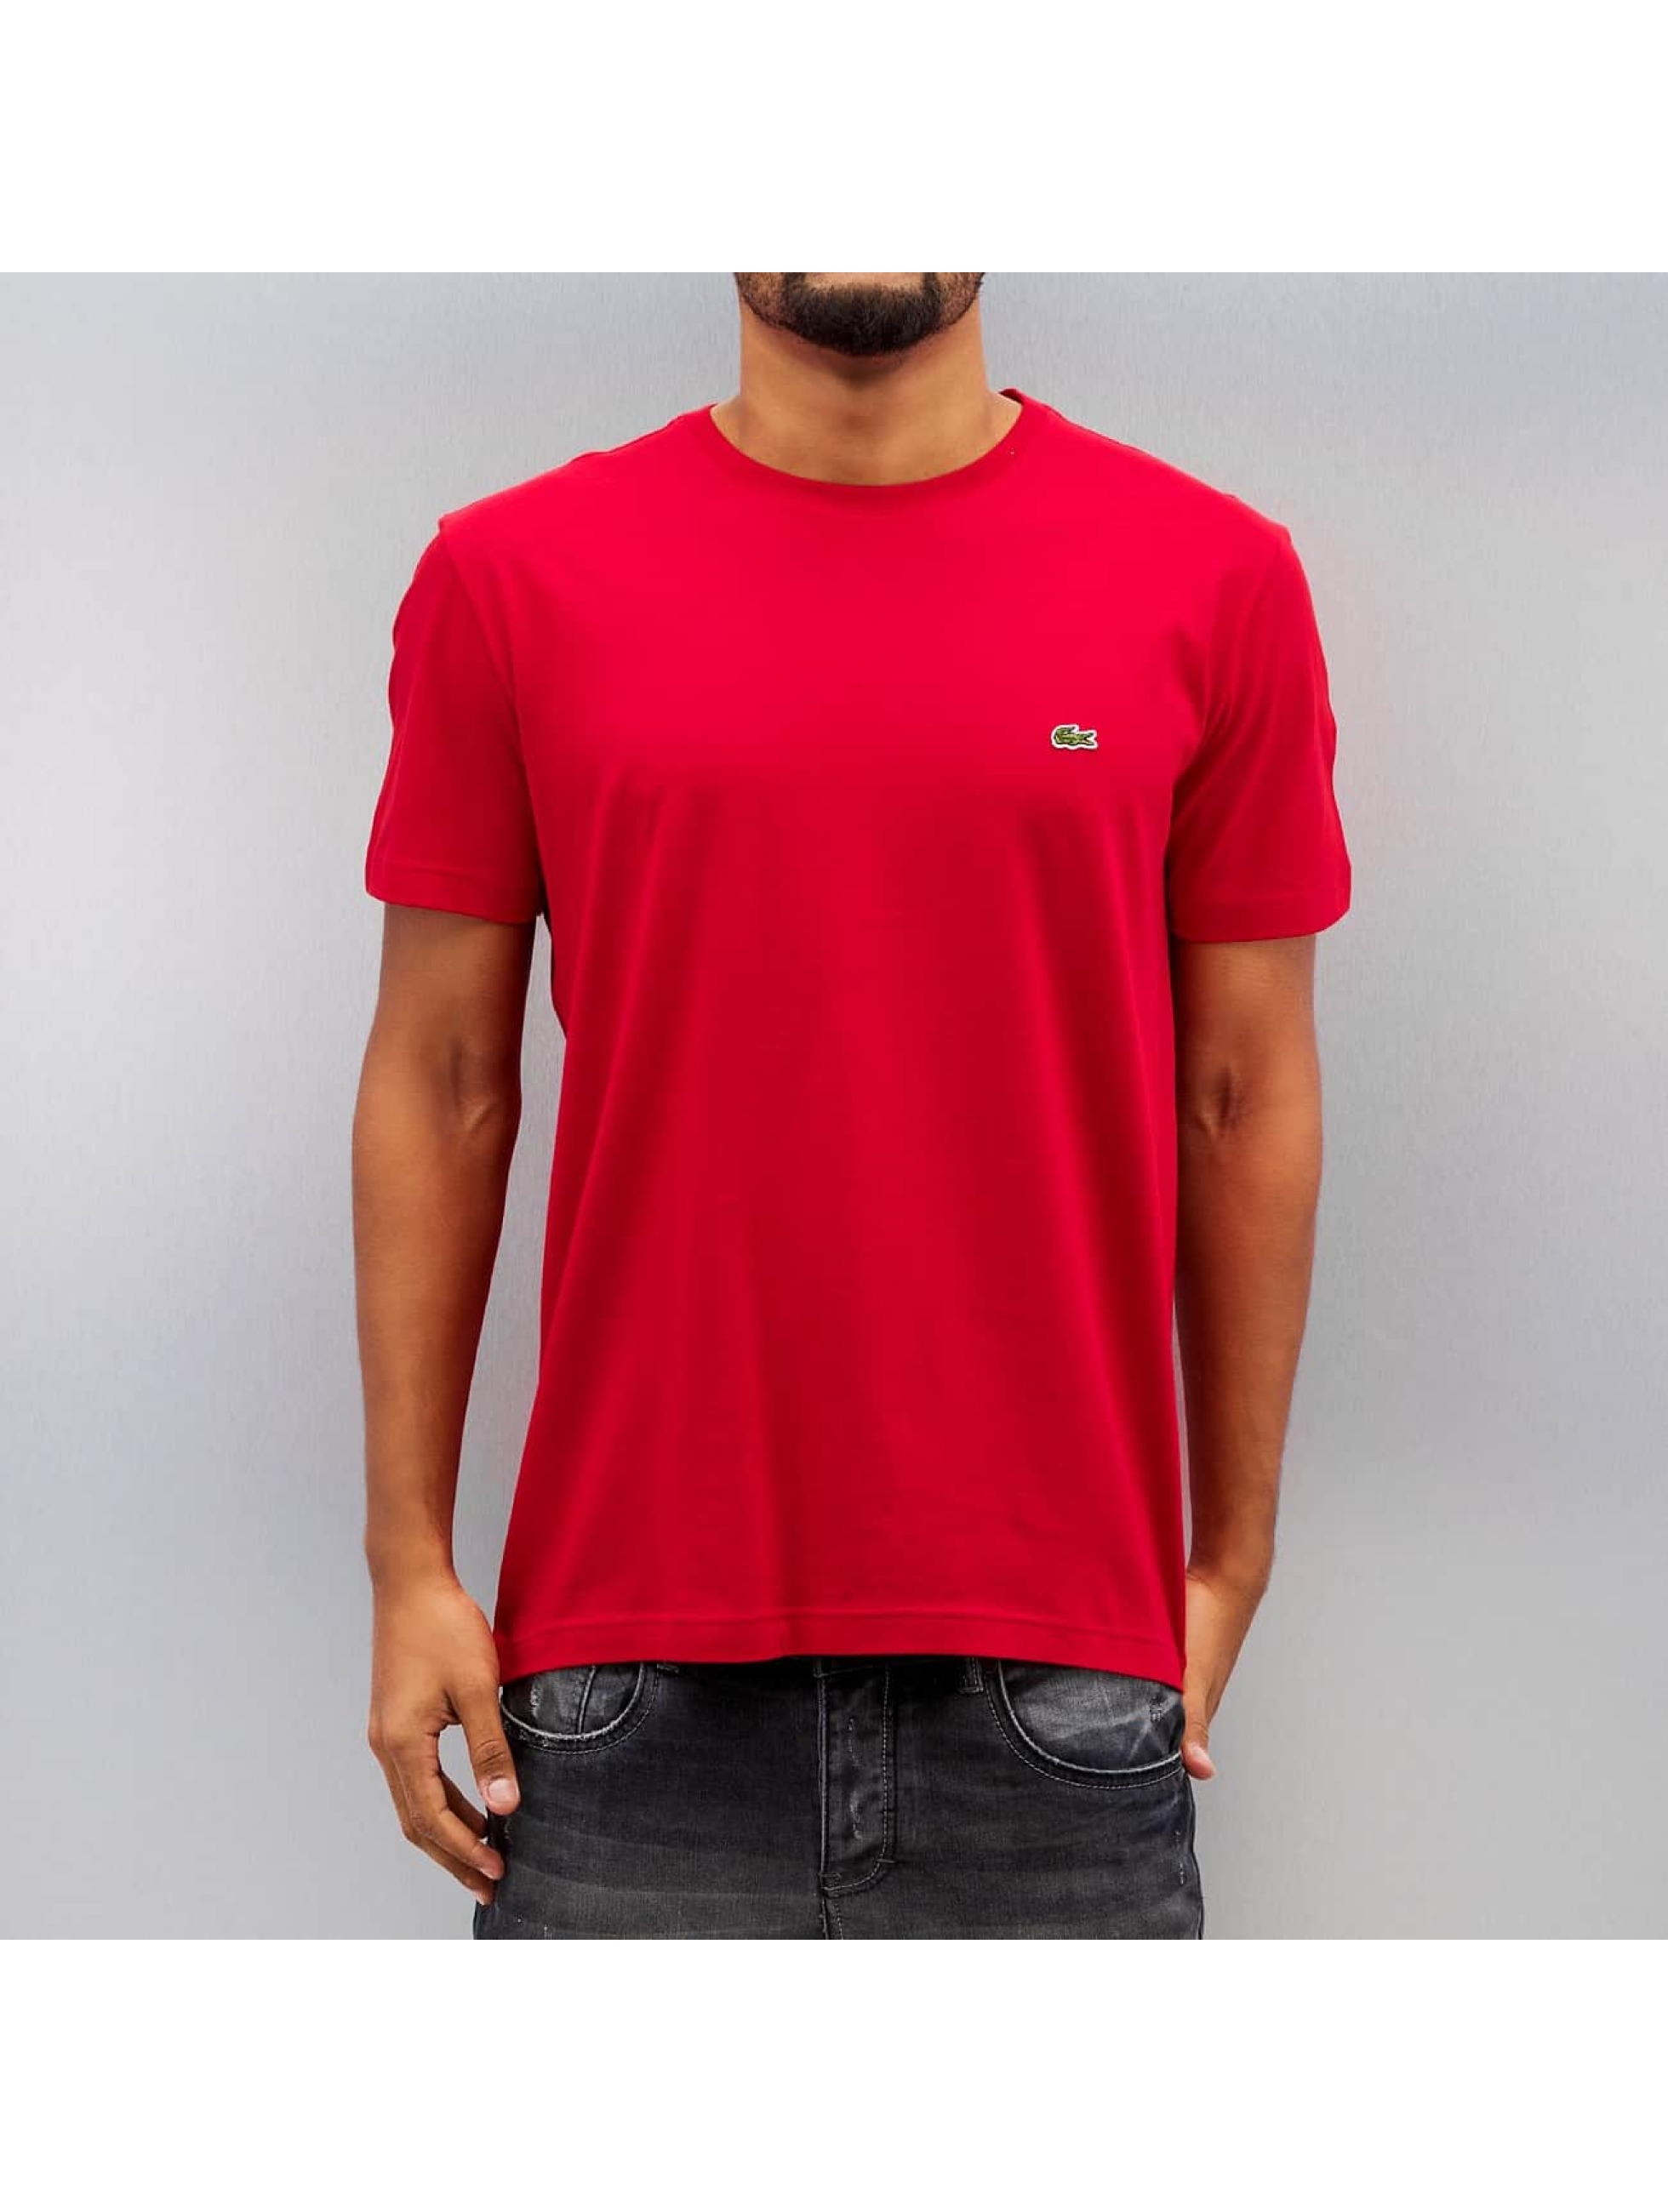 Lacoste T-Shirt Classic red